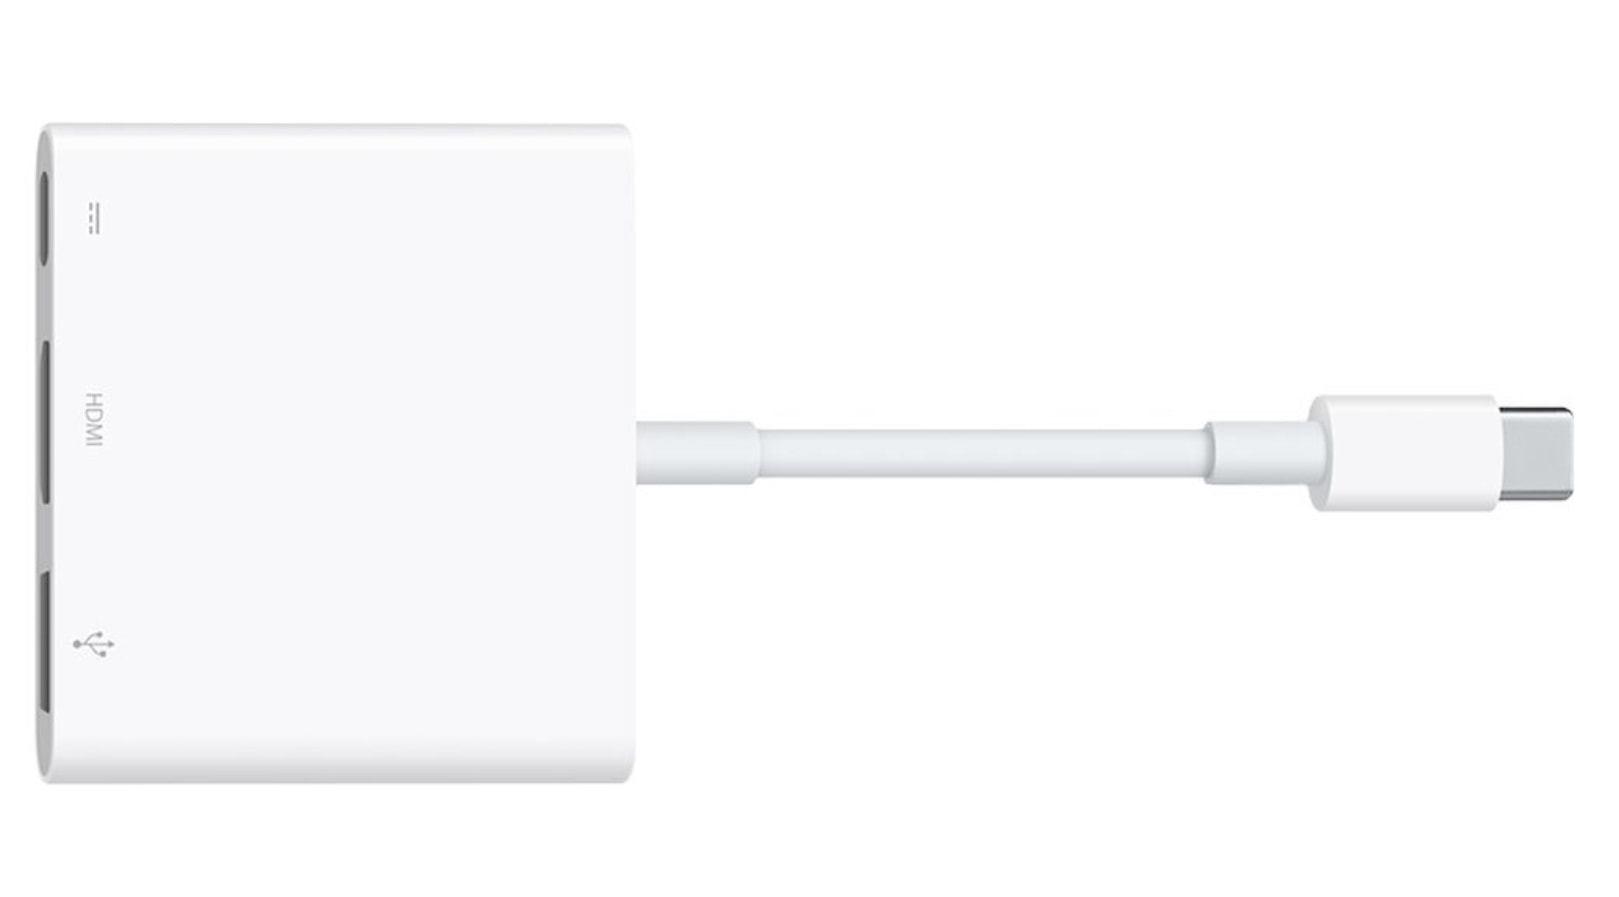 Apple-USB-AV-dongle